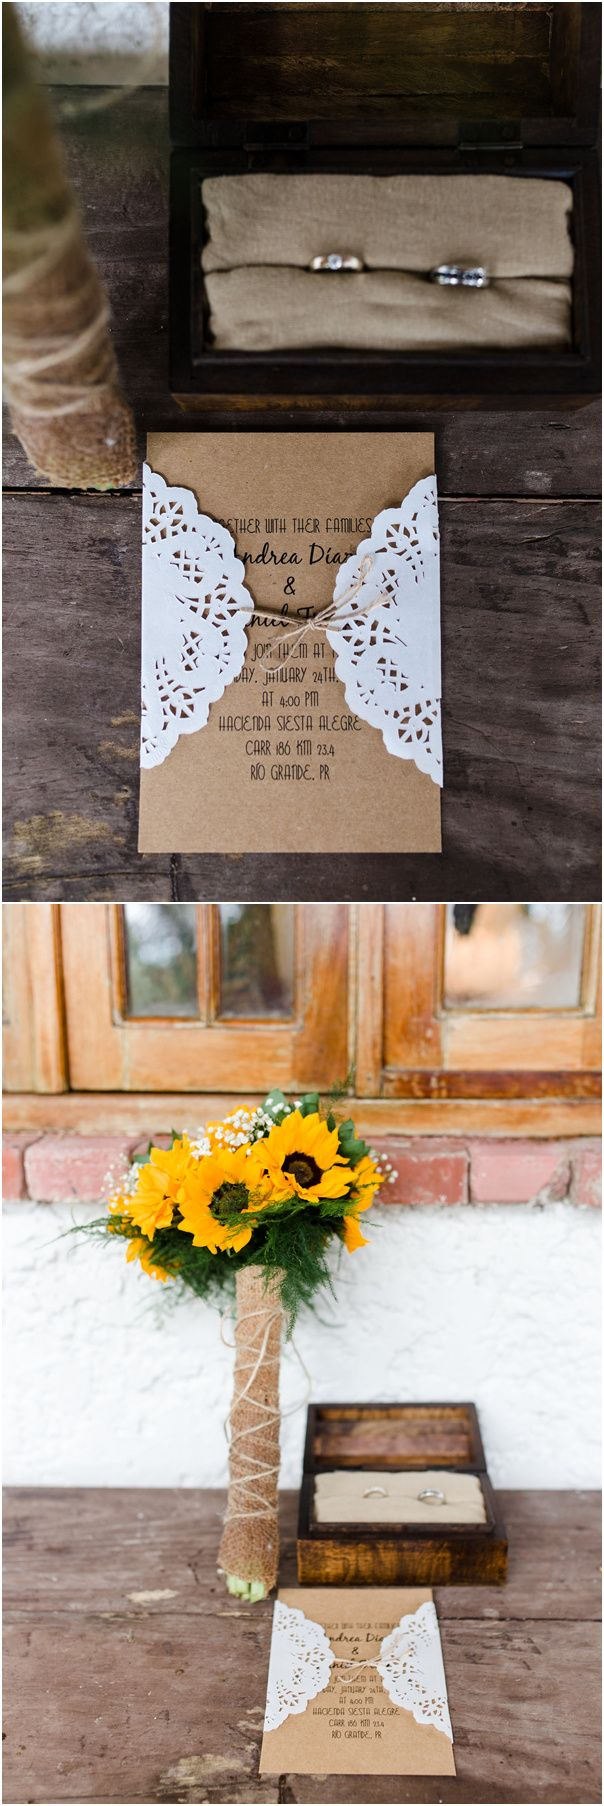 wedding renewal invitation ideas%0A rustic lace and burlap wedding invitations for country wedding ideas